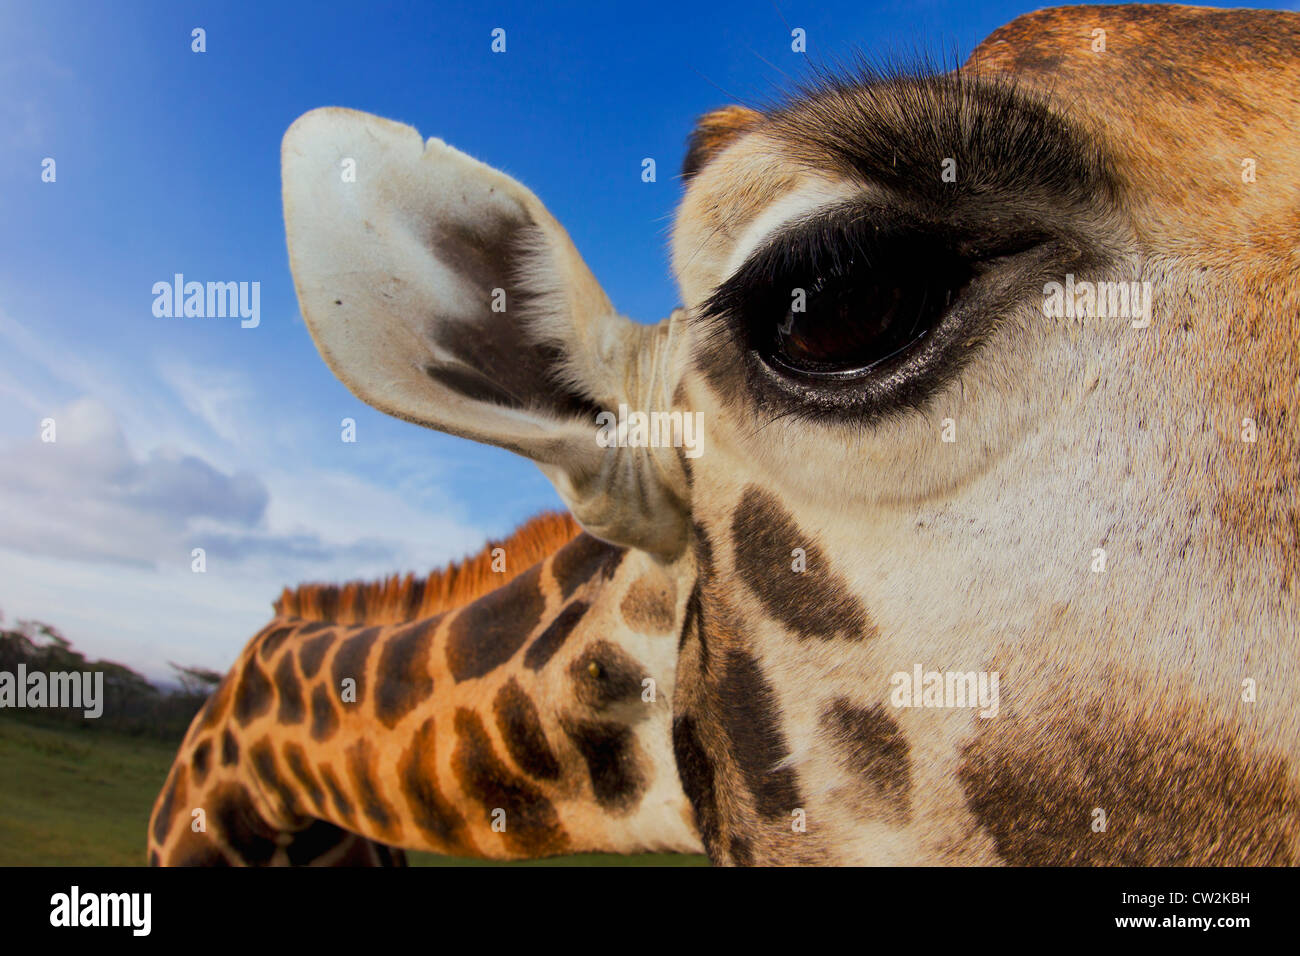 Close-up of Rothschild Giraffe (Giraffa camelopardalis rothschildi) eye. - Stock Image